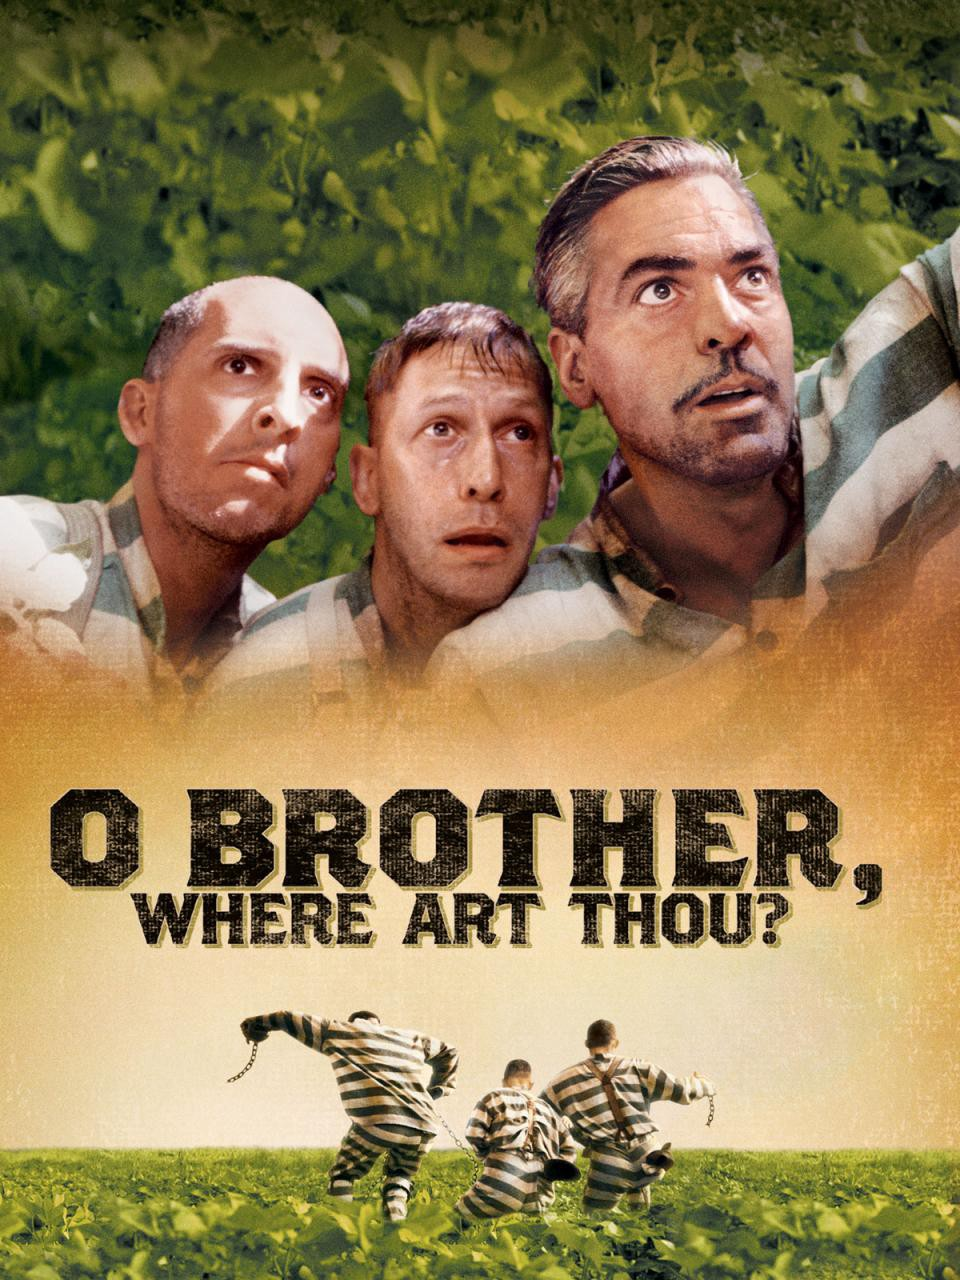 002 O Brother Where Art Thou Essay 1br06napar7lp Gs6wzm Ug Striking And The Odyssey Comparison Vs Compared To Full